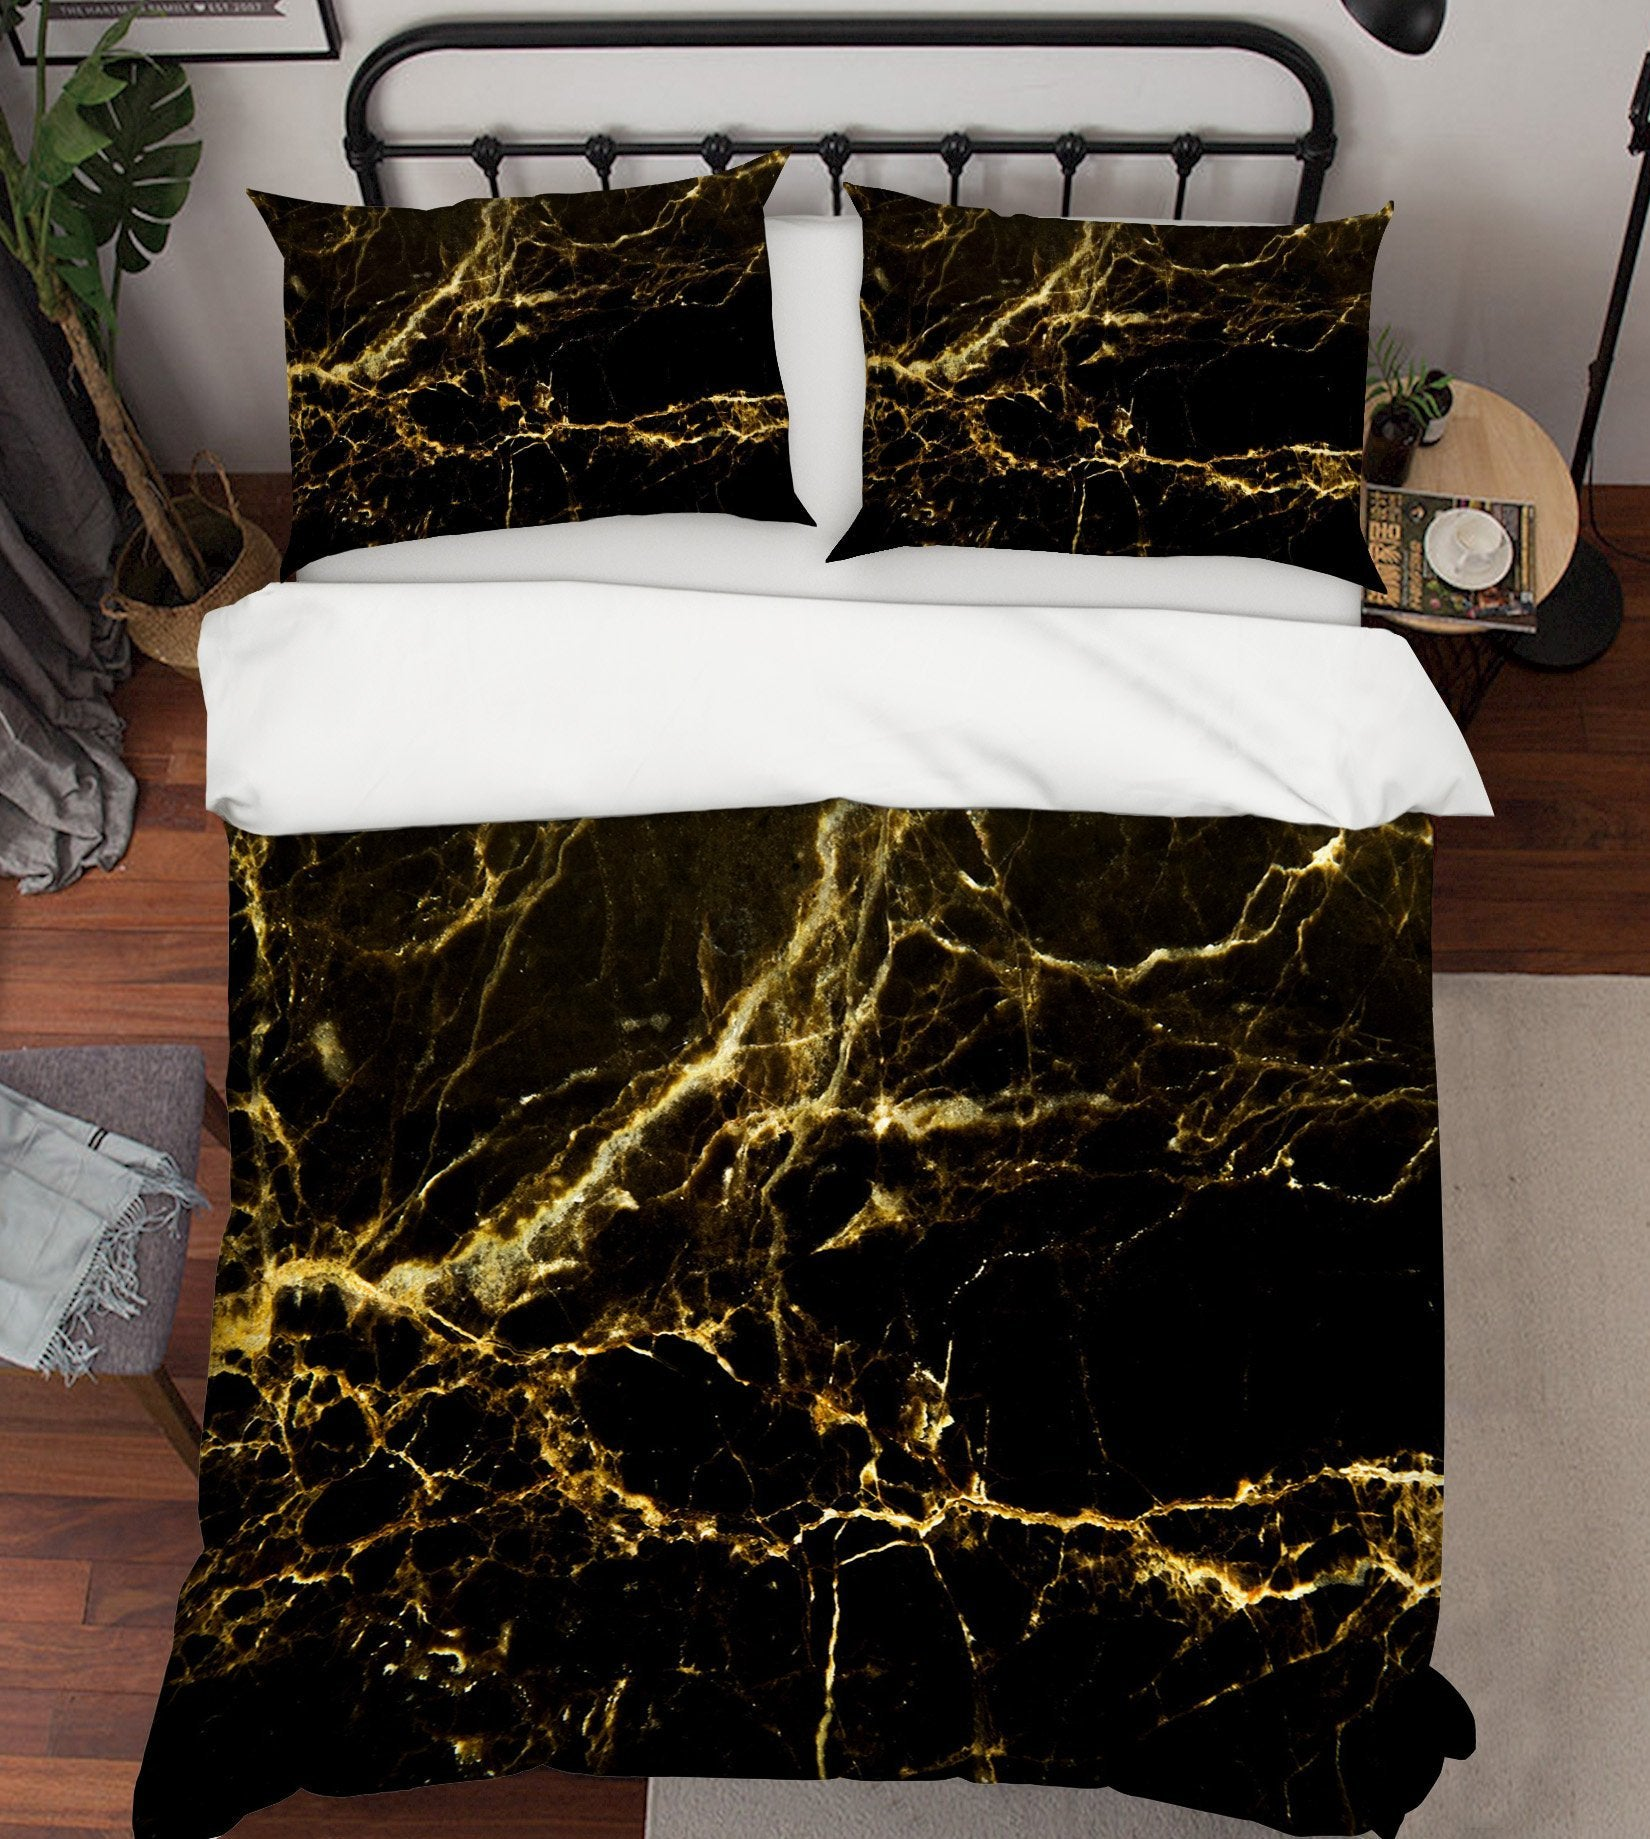 3D Black Gold Irregular 039 Bed Pillowcases Quilt Wallpaper AJ Wallpaper